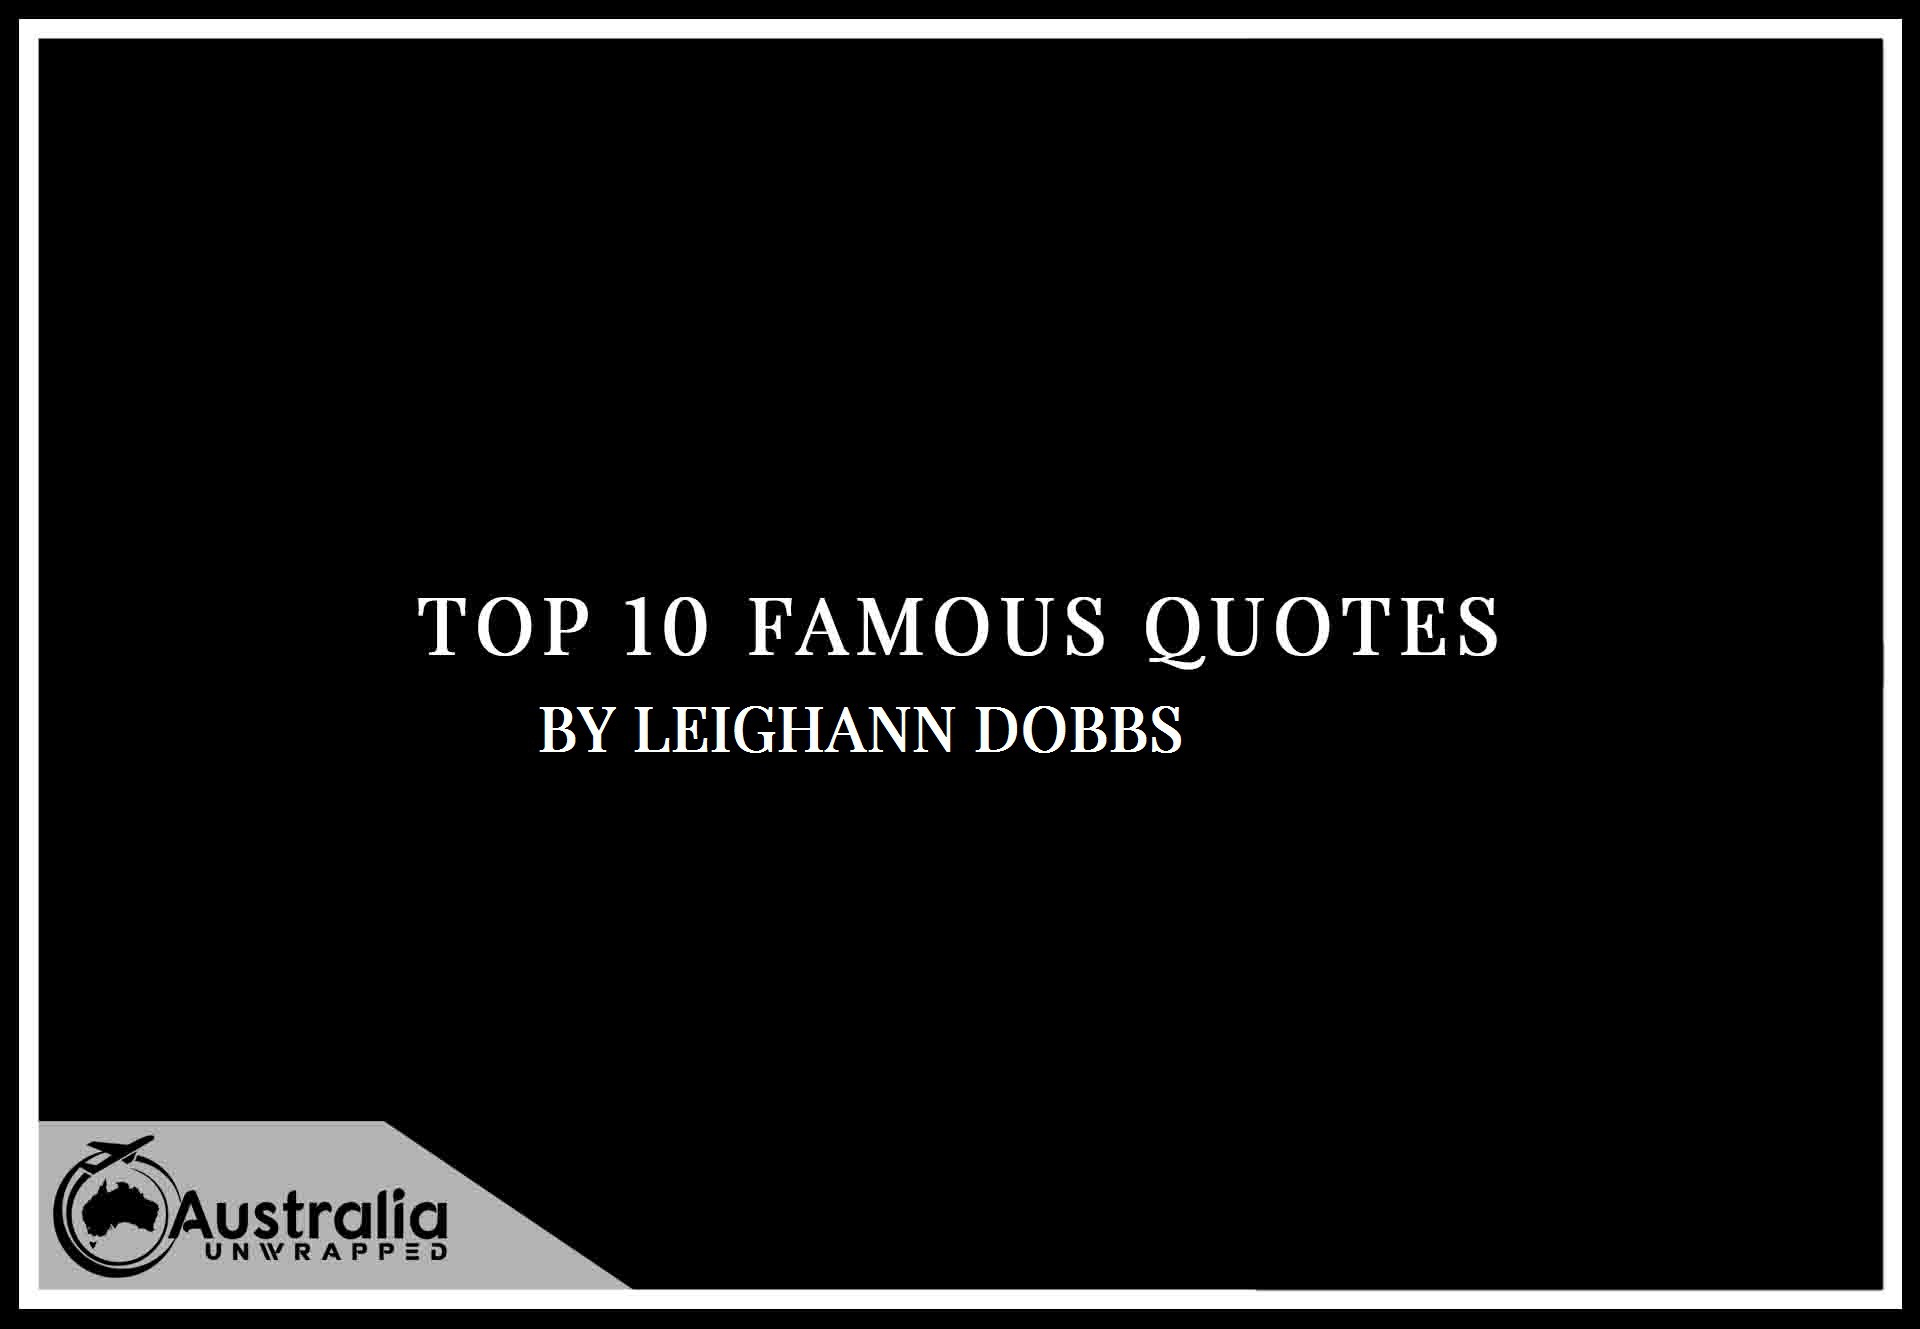 Leighann Dobbs's Top 10 Popular and Famous Quotes